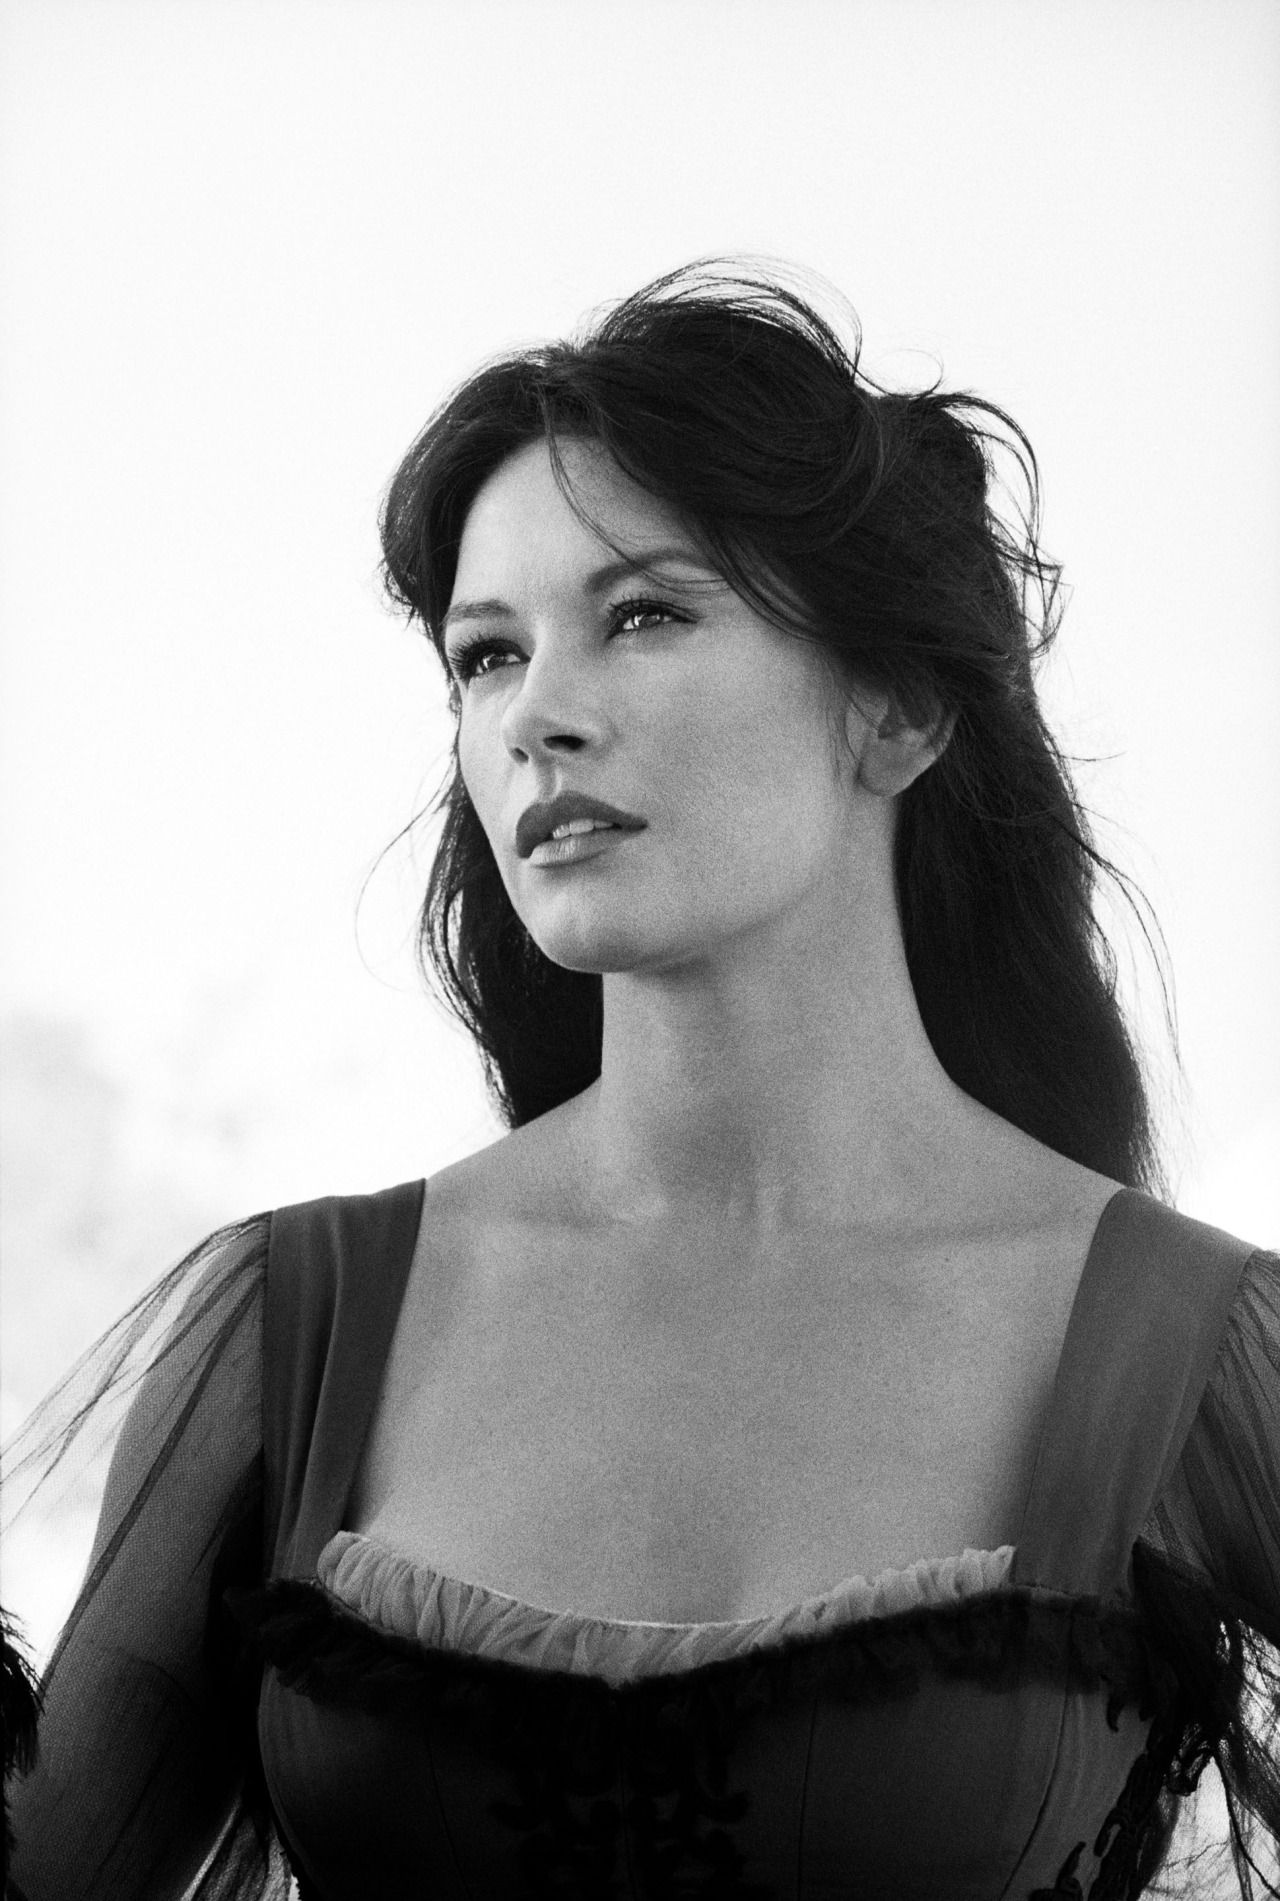 Catherine Zeta Jones – On the set of 'The Mask of Zorro'